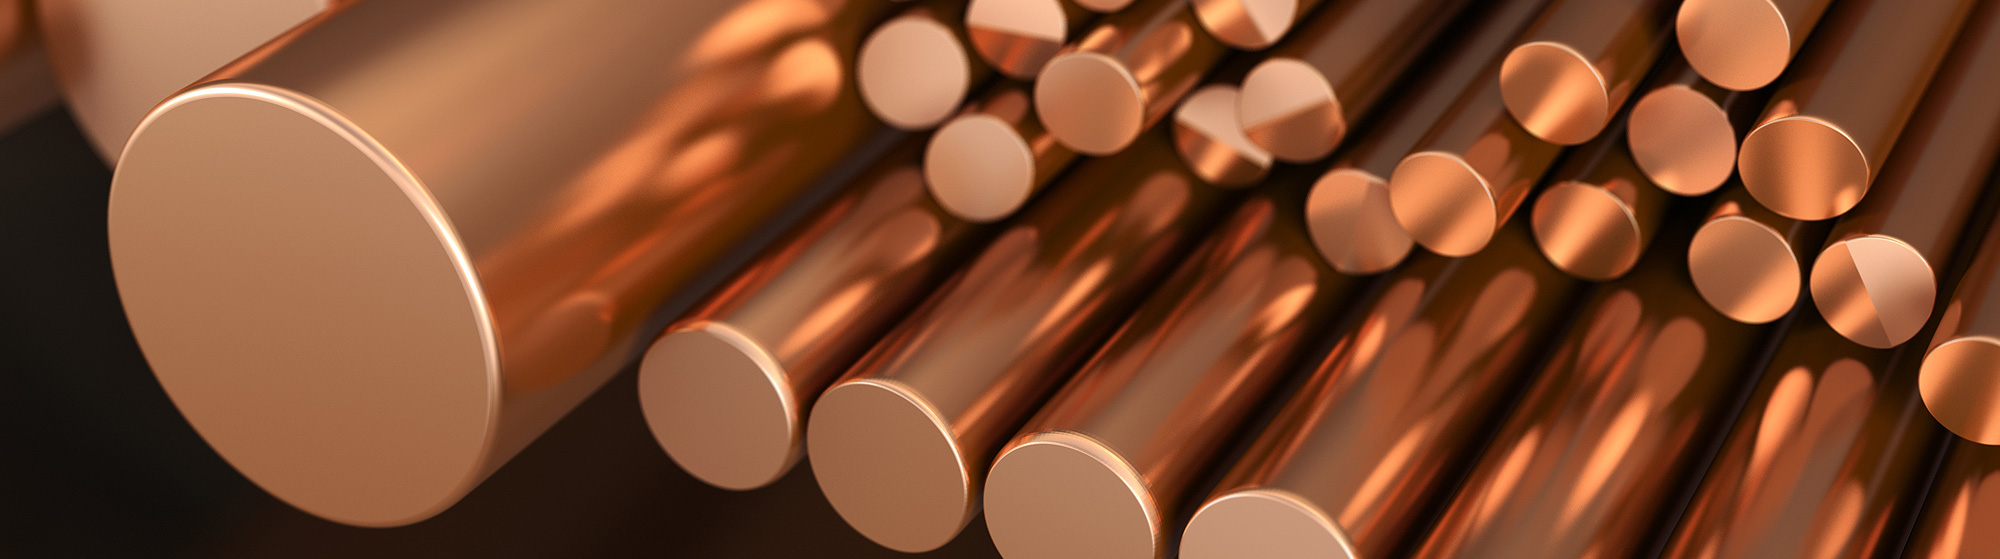 Copper Wave Analysis – 08 March, 2019